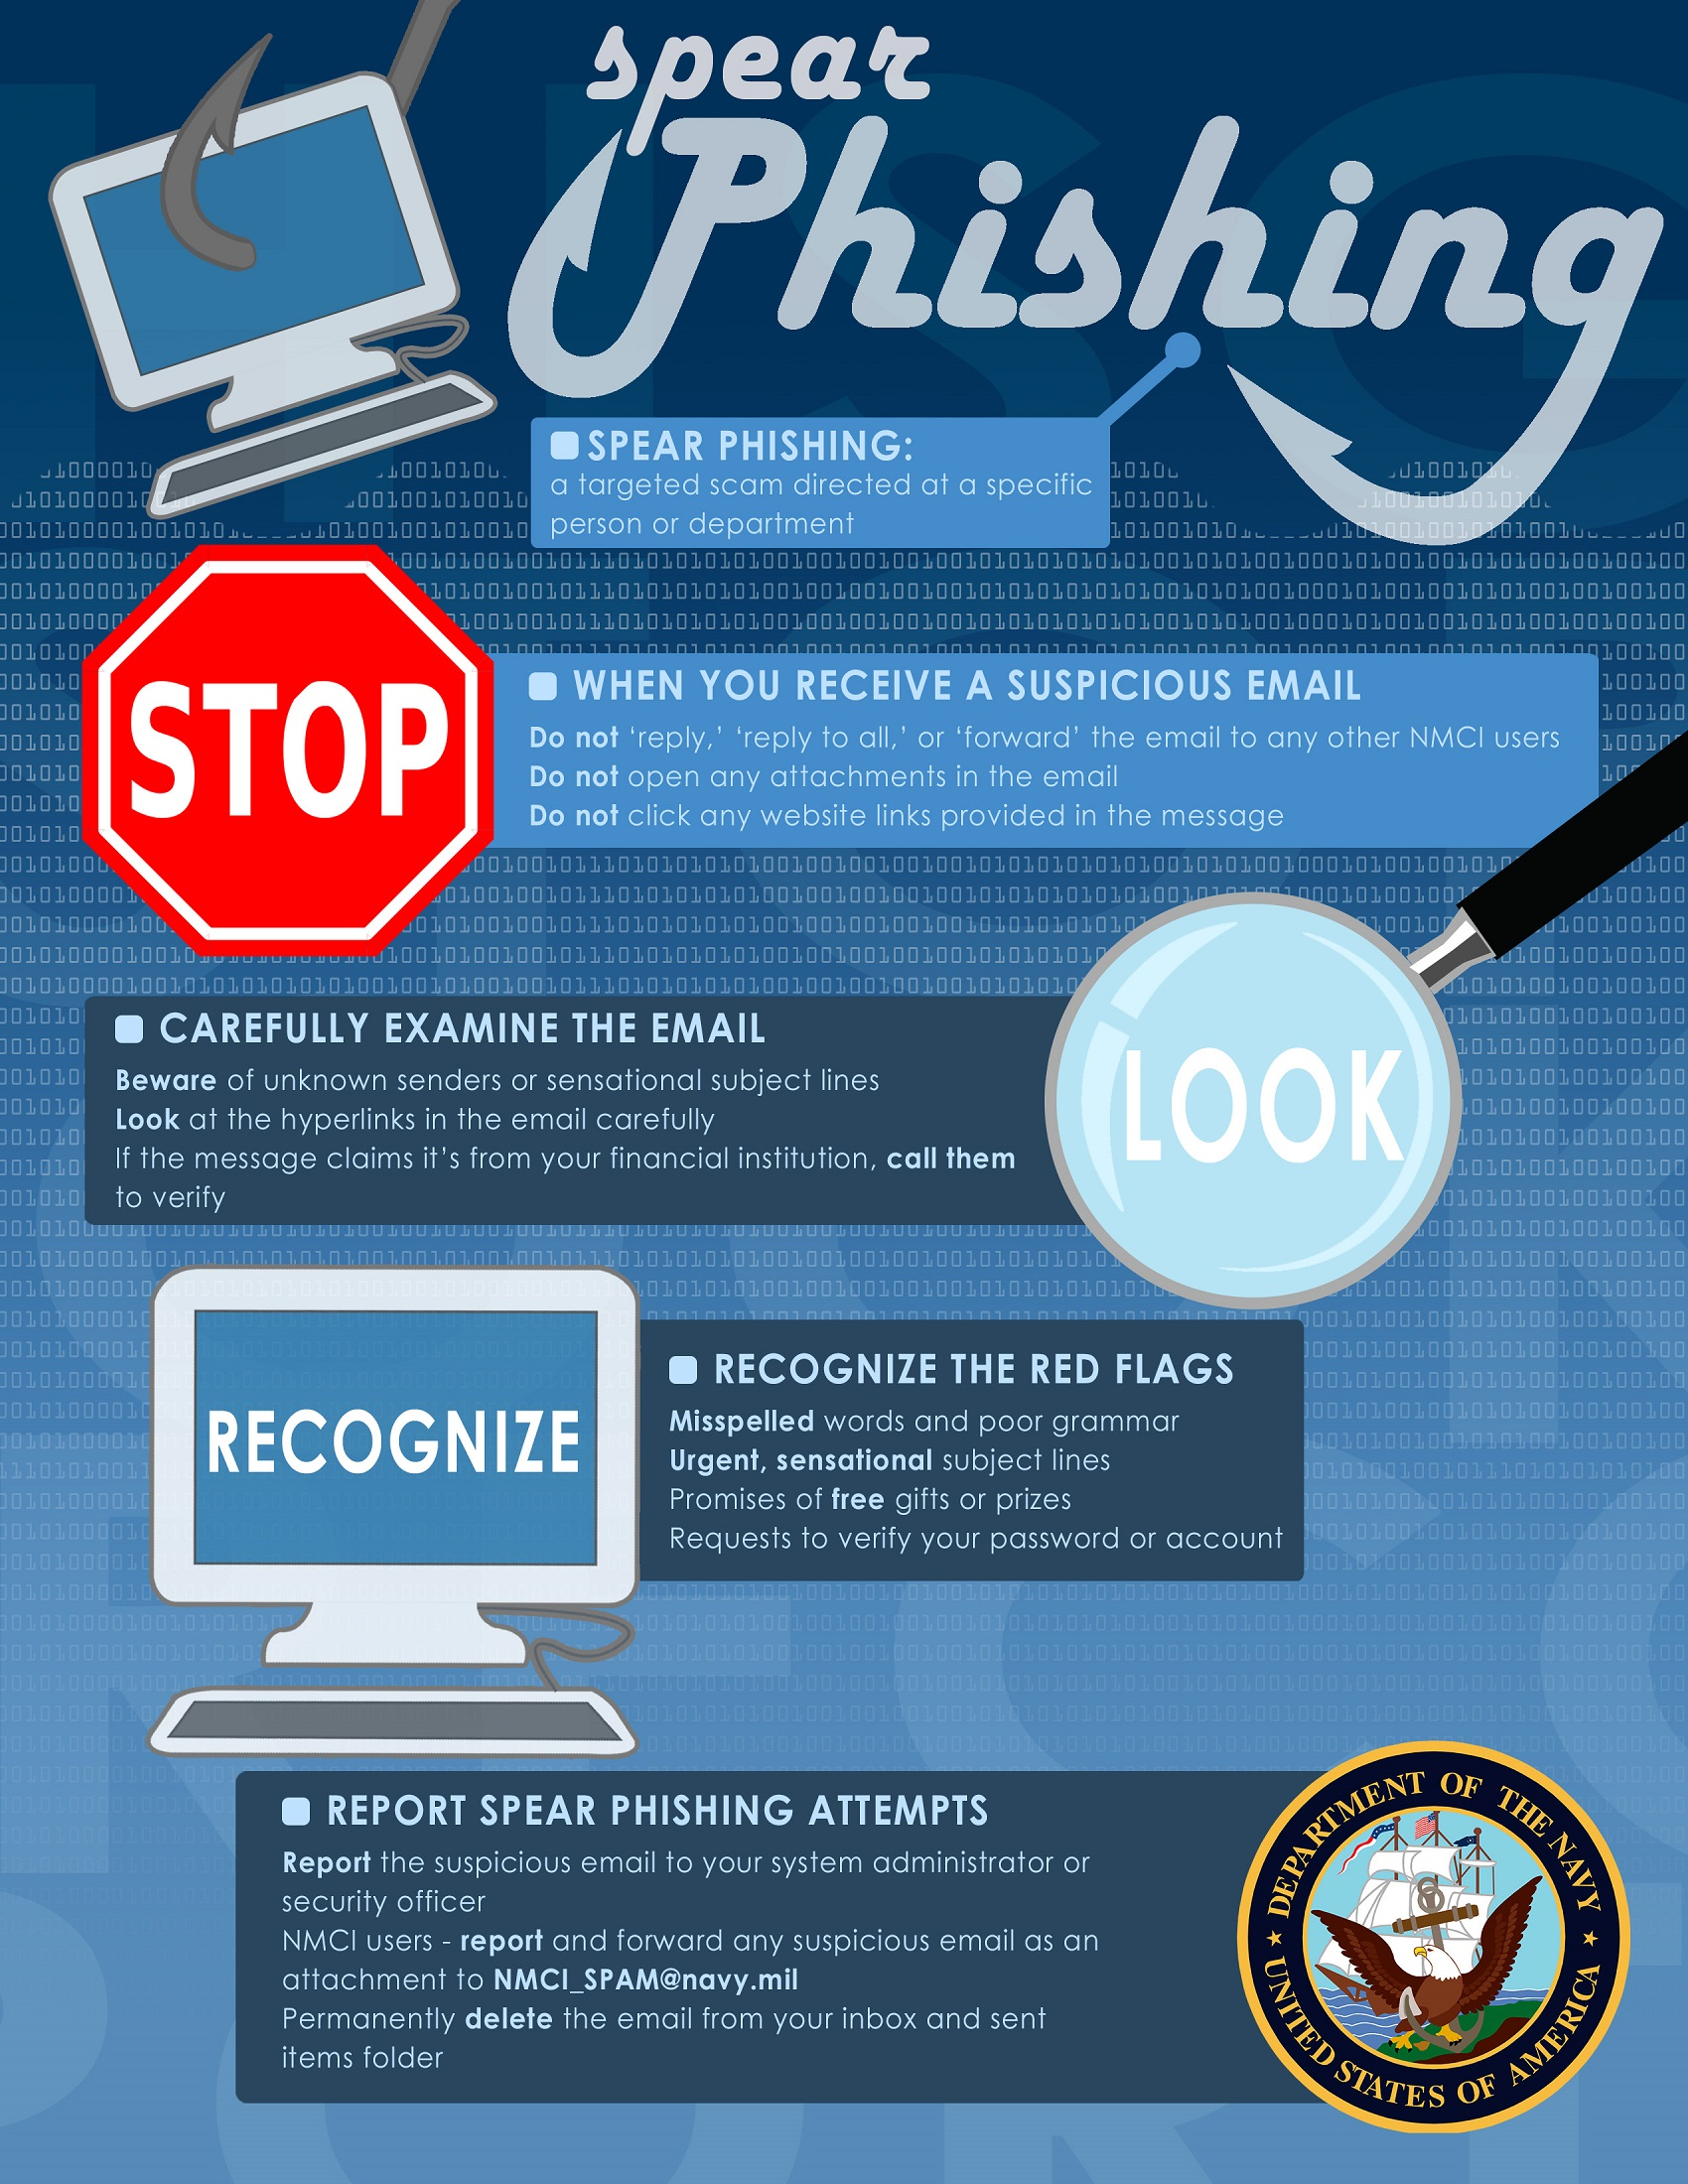 Difference Between Spear Phishing and Whaling